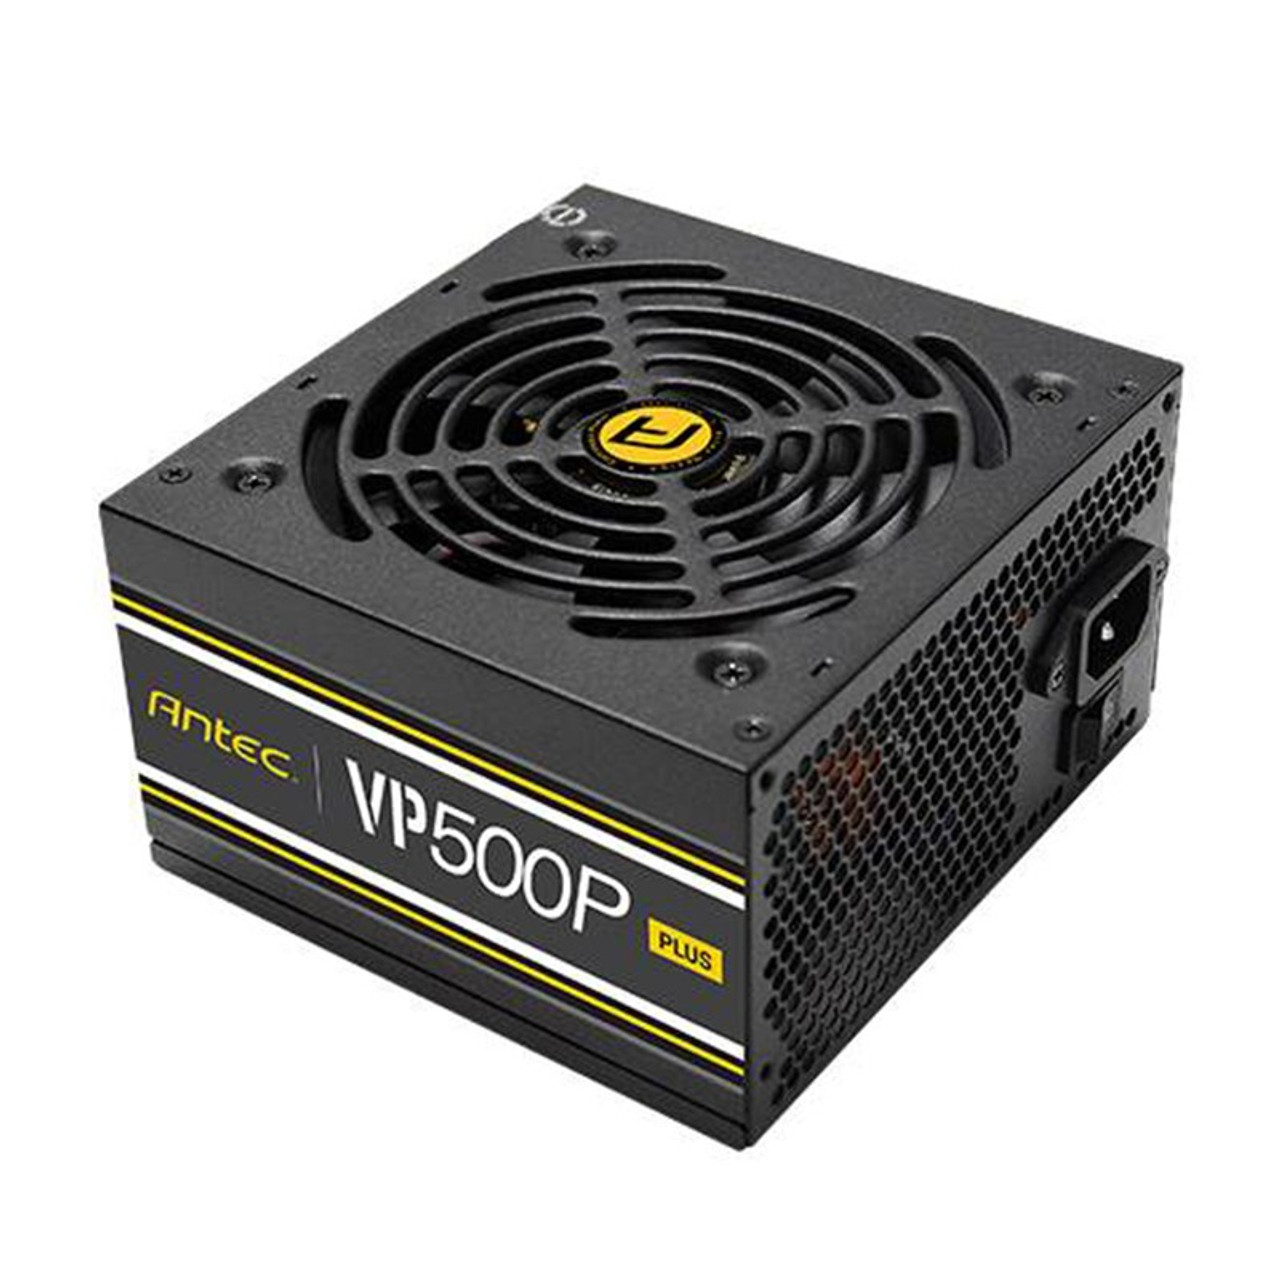 Image for Antec VP500P PLUS 500W 80+ Non-Modular Power Supply CX Computer Superstore